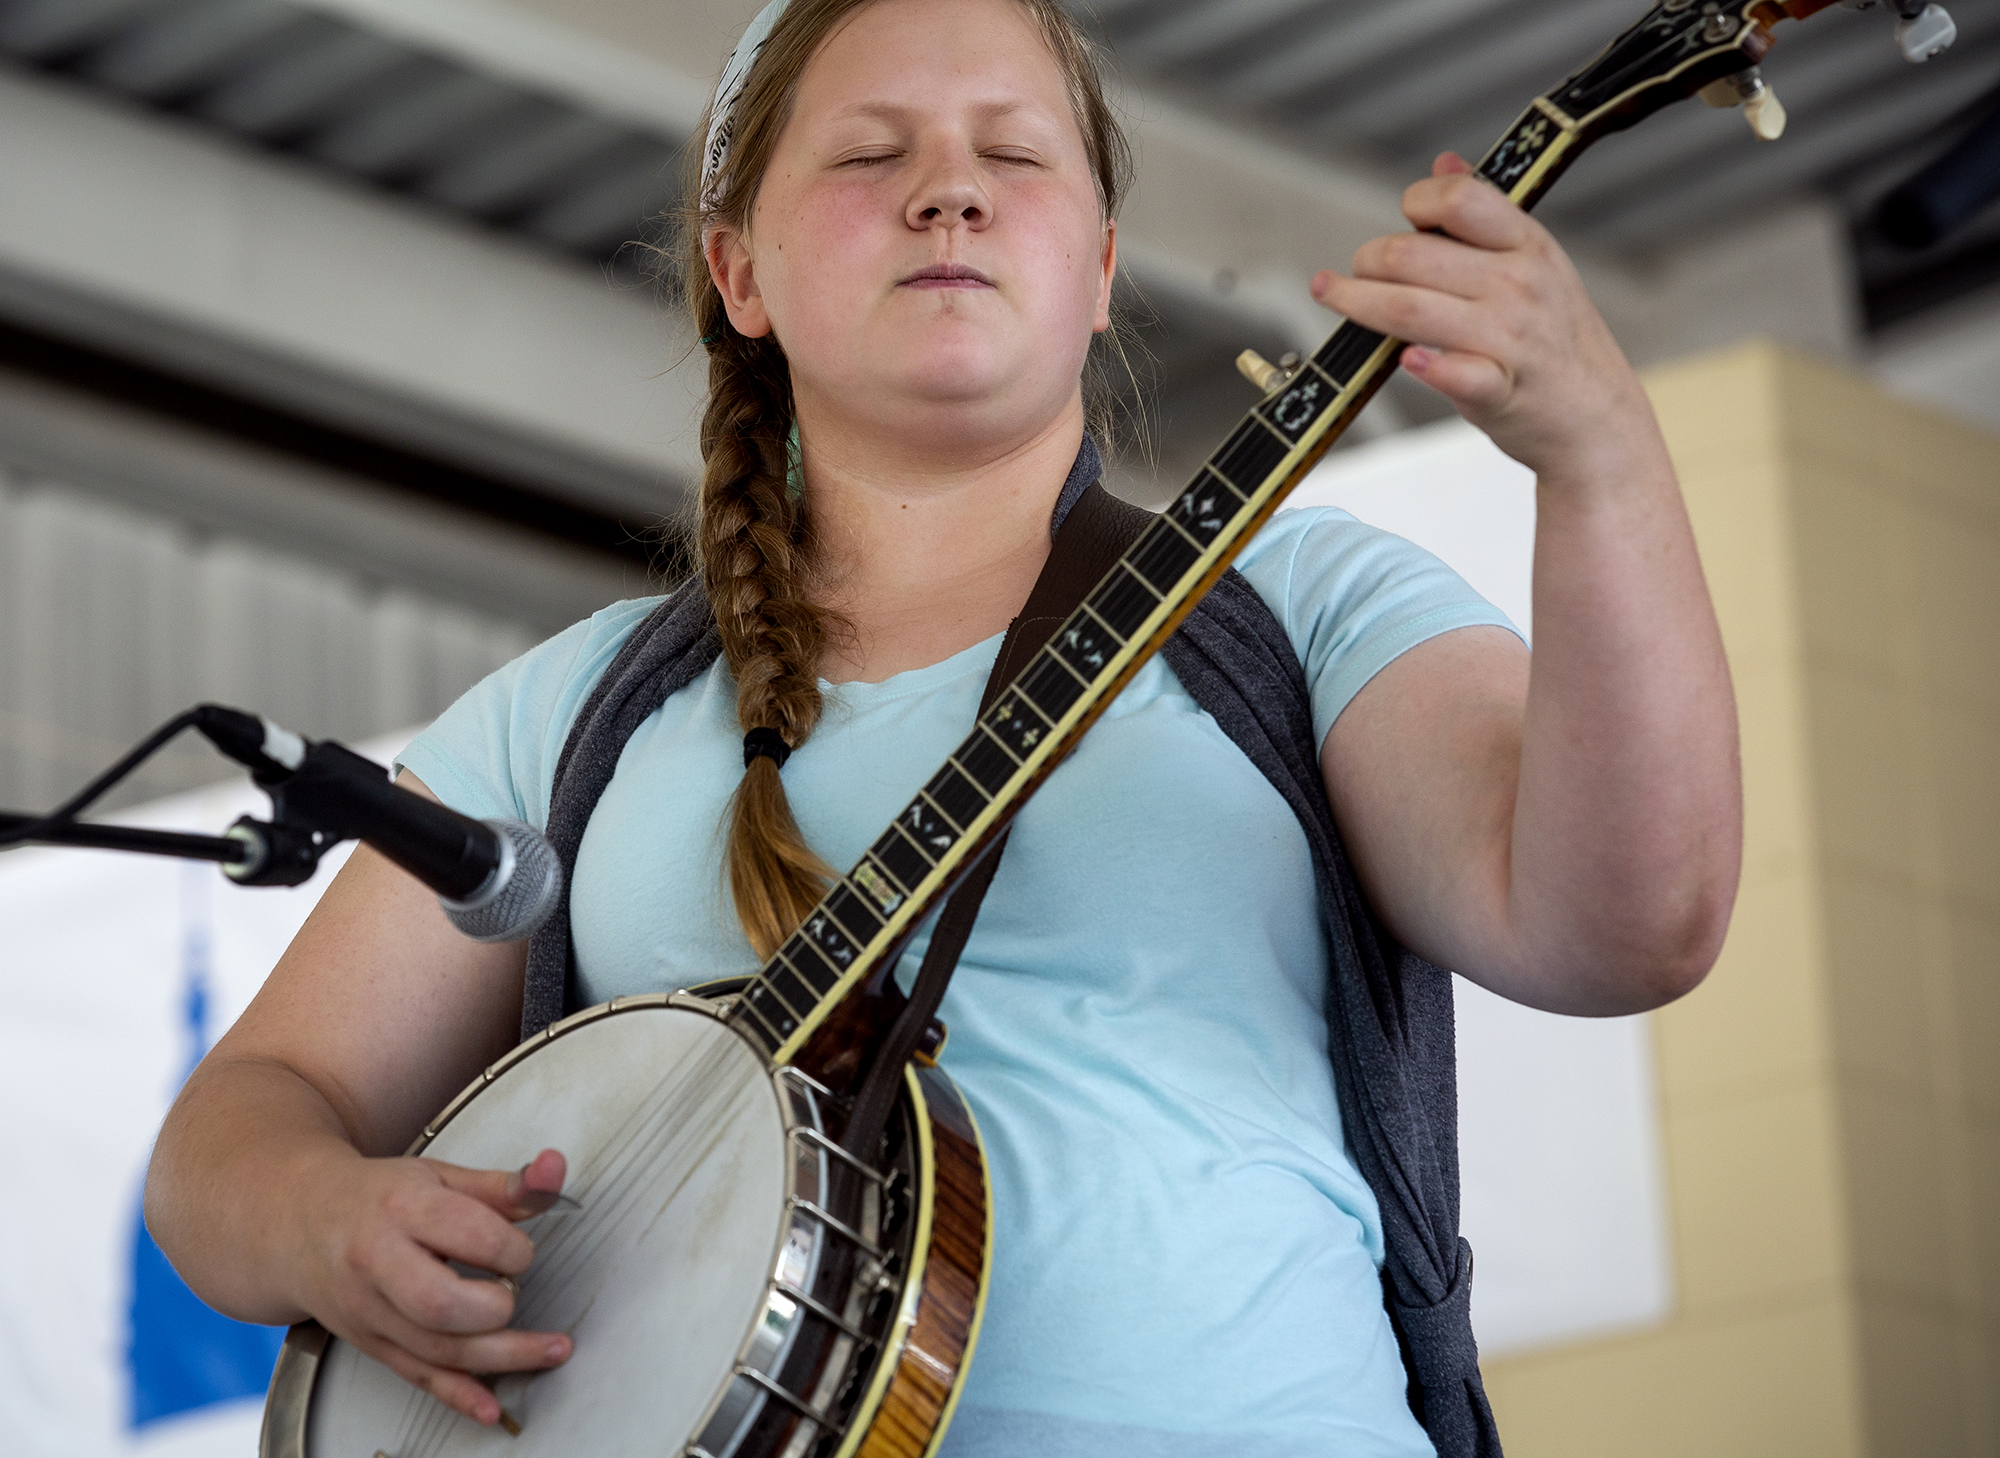 Joy Worthington concentrates on the music while playing Foggy Mountain Breakdown during the Fiddle and Banjo contest on the Lincoln Stage at the Illinois State Fair Saturday, Aug. 11, 2018 on the fairgrounds in Springfield, Ill. [Rich Saal/The State Journal-Register]